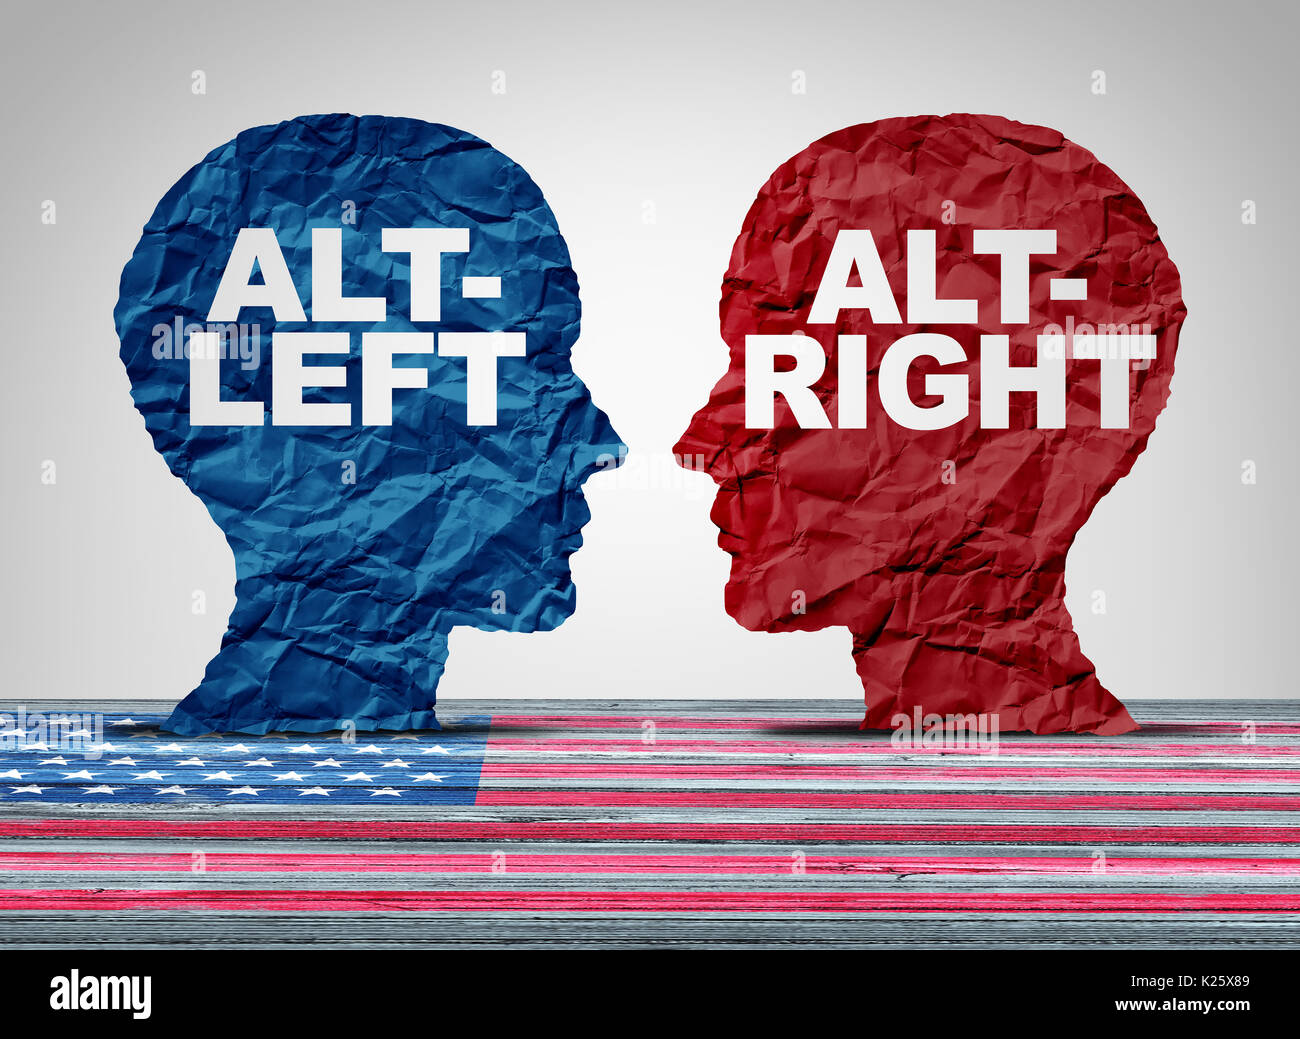 Alt right or altleft concept as a political and social thinking idelogies concept with two sides of opposing ideology debate with 3D illustration. - Stock Image